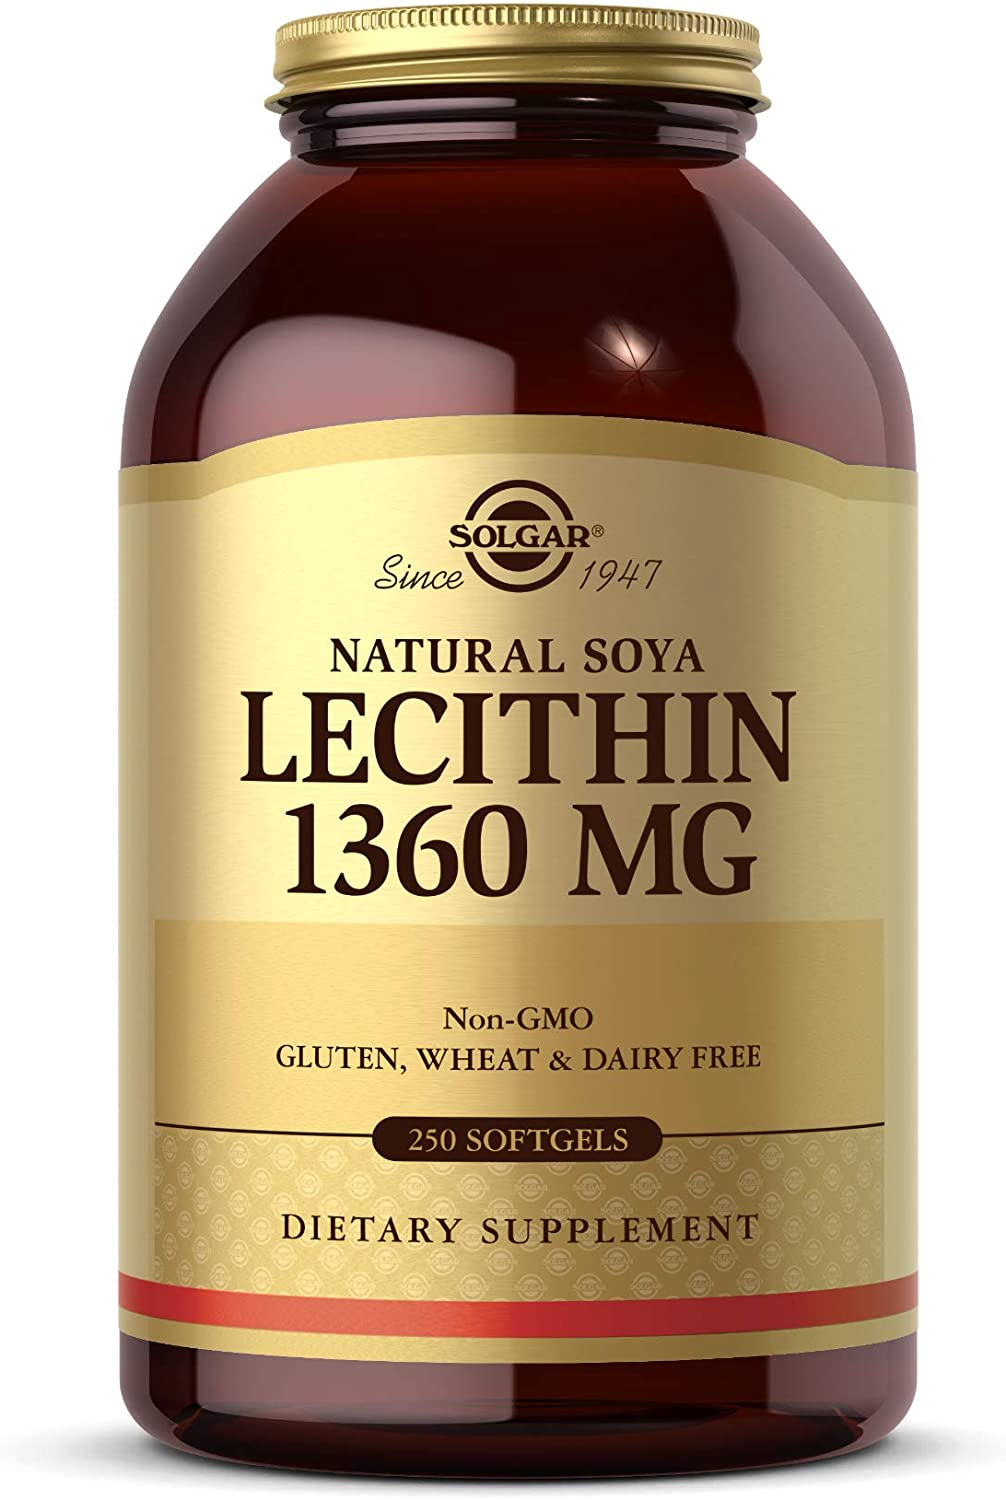 Solgar Lecithin 1360mg, 250 Softgels - Supports Overall Health - Natural Soya Lecithin - Source of Choline & Essential Fat Linoleic Acid - Gluten Free, Dairy Free - 250 Servings